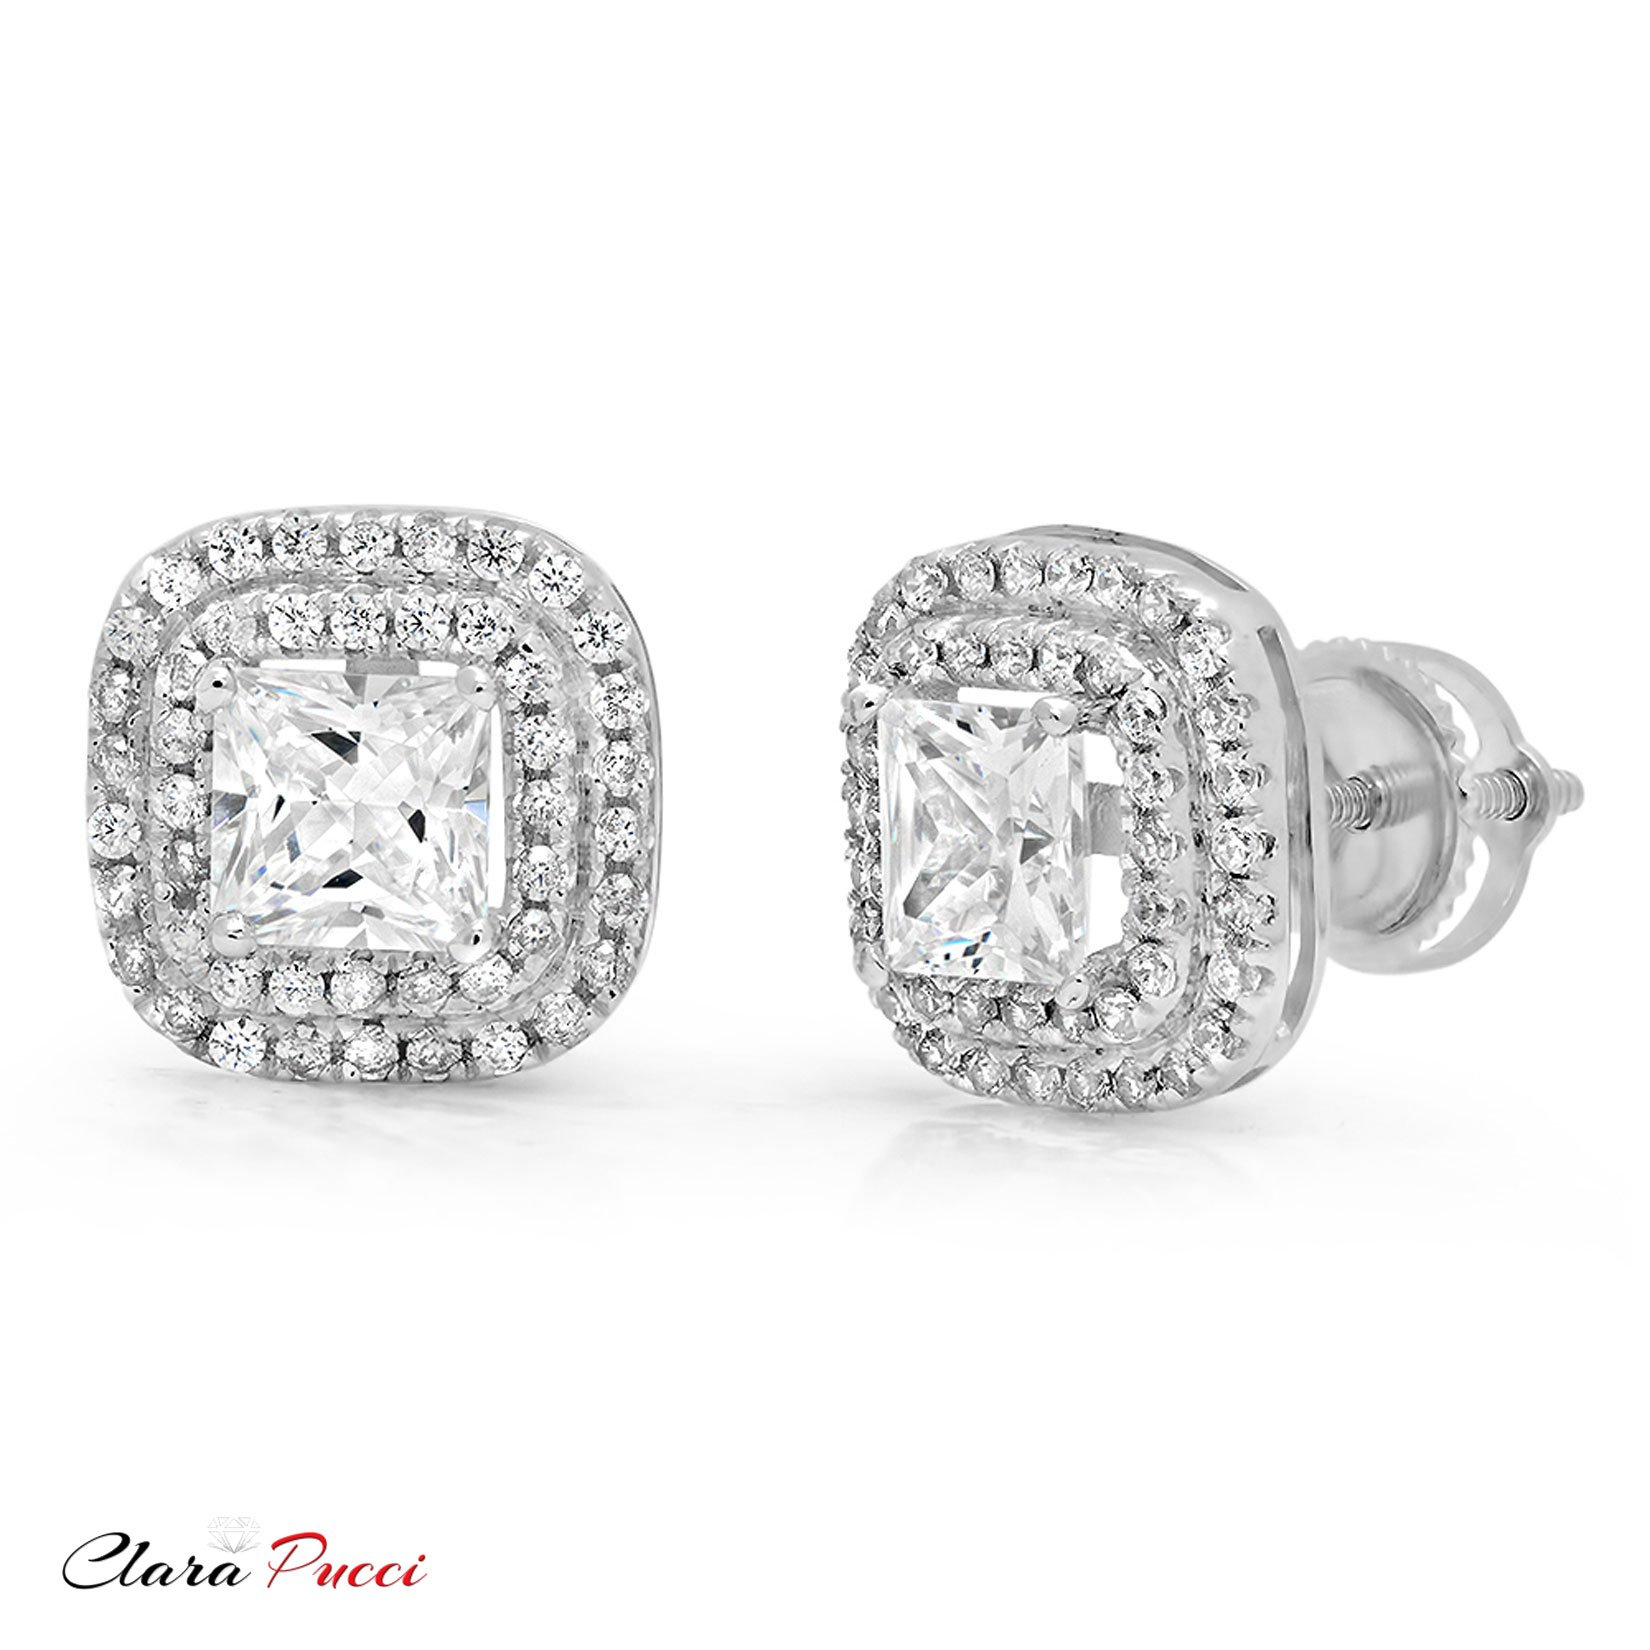 Clara Pucci 2.79 CT CZ Princess Cut SOLITAIRE Double HALO Stud EARRINGS Real 14K White GOLD by Clara Pucci (Image #2)